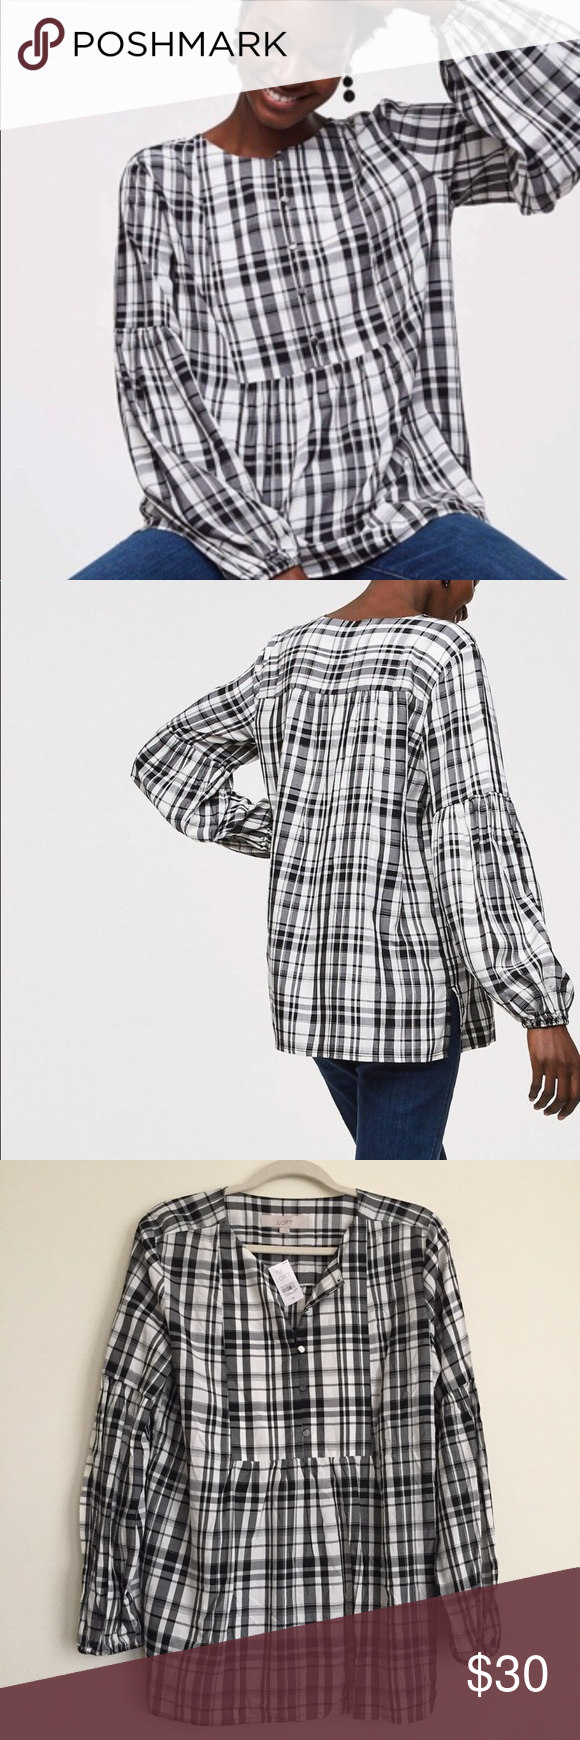 cb181f9ba9b NWT LOFT | Henley Plaid Tunic Top LOFT Black, White Plaid Long Sleeve  Womens Size